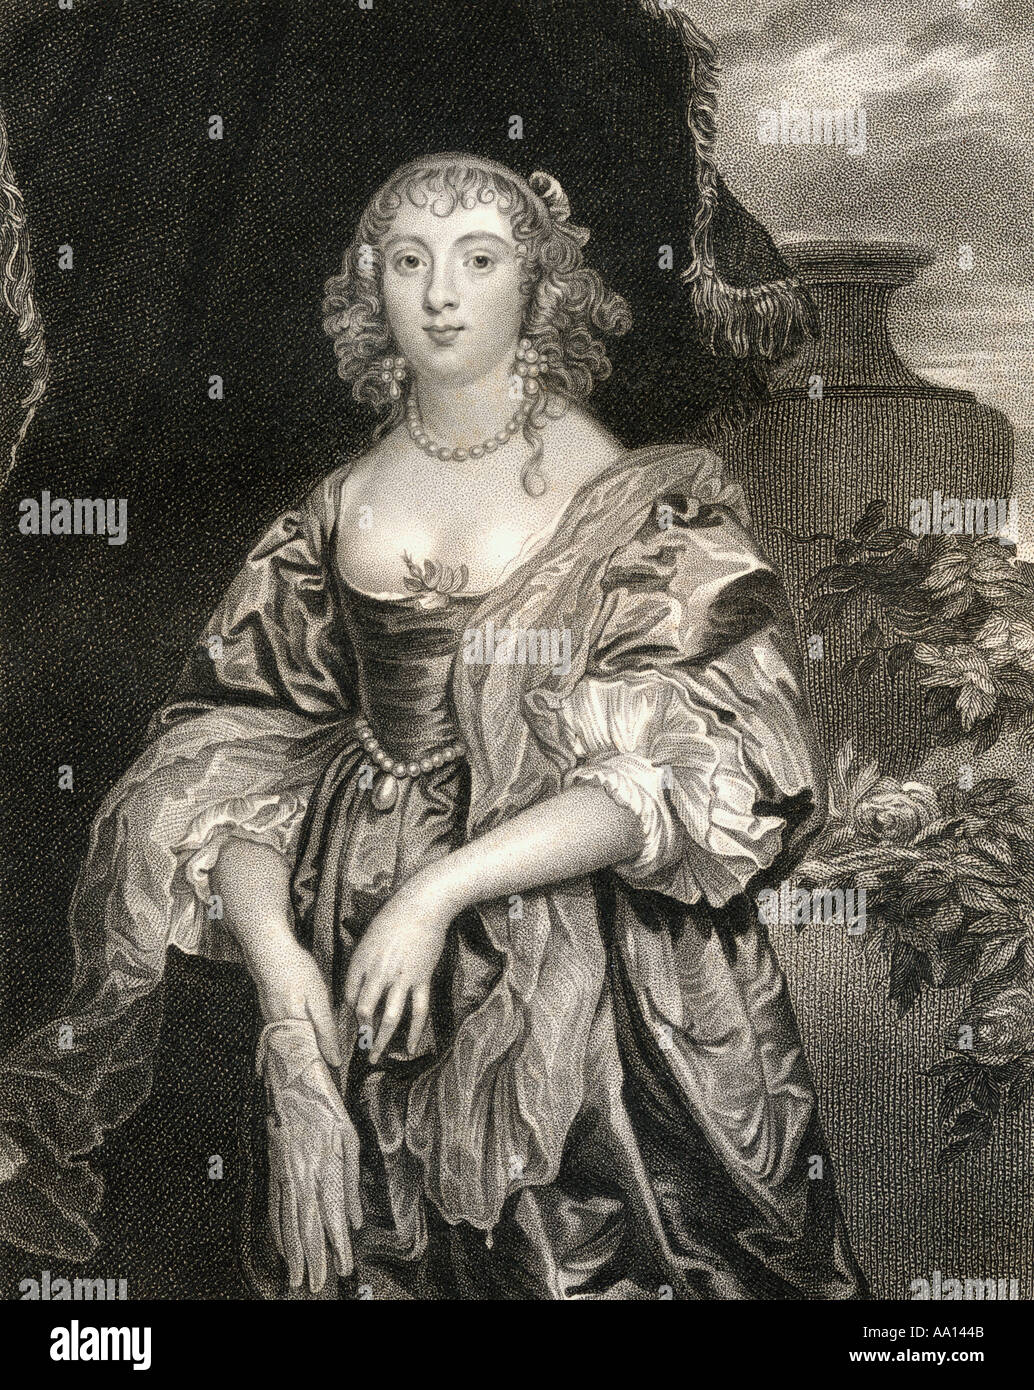 Anne Carr, Countess of Bedford, 1615 - 1684.  Wealthy English noblewoman, and wife of William Russell, 5th Earl of Bedford - Stock Image